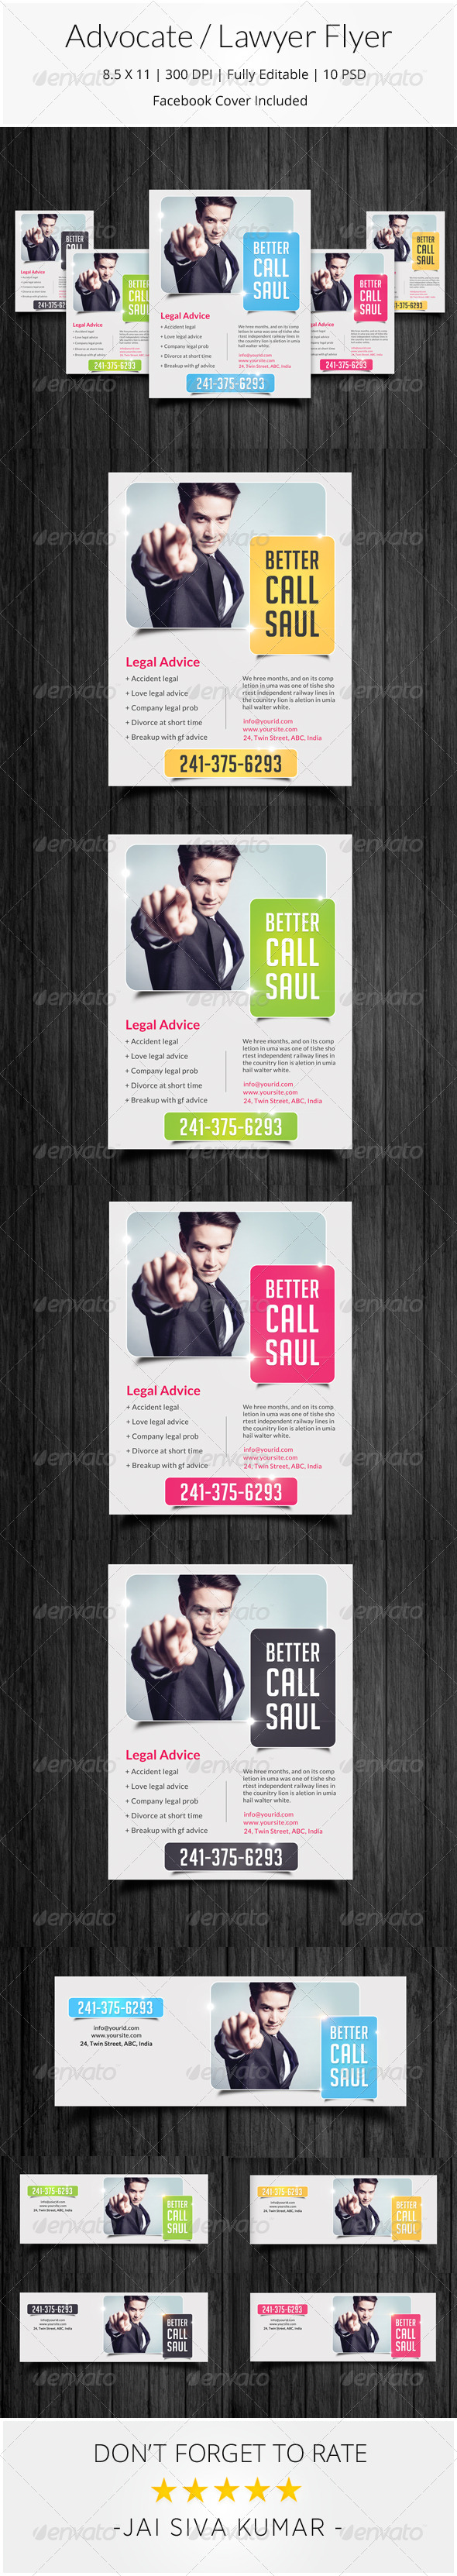 GraphicRiver Advocate Lawyer Flyer 8590436